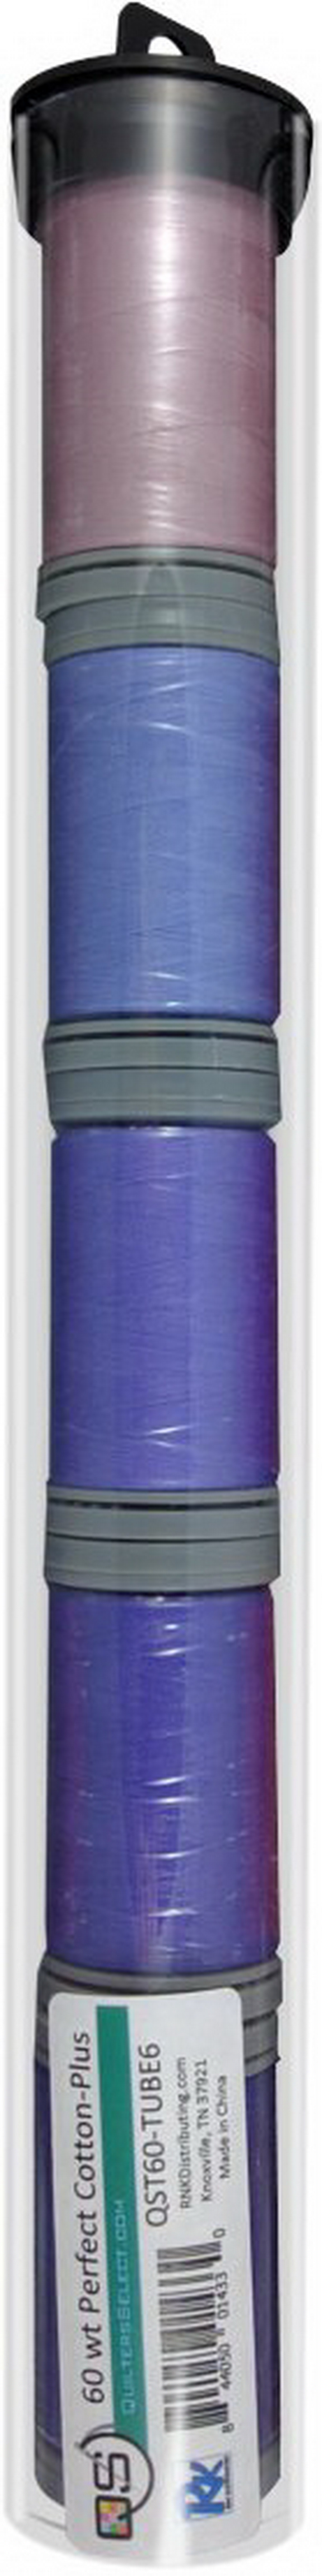 Quilters Select Perfect Cotton Plus Thread 60 Weight 400m Spools - Bundle Tube 6